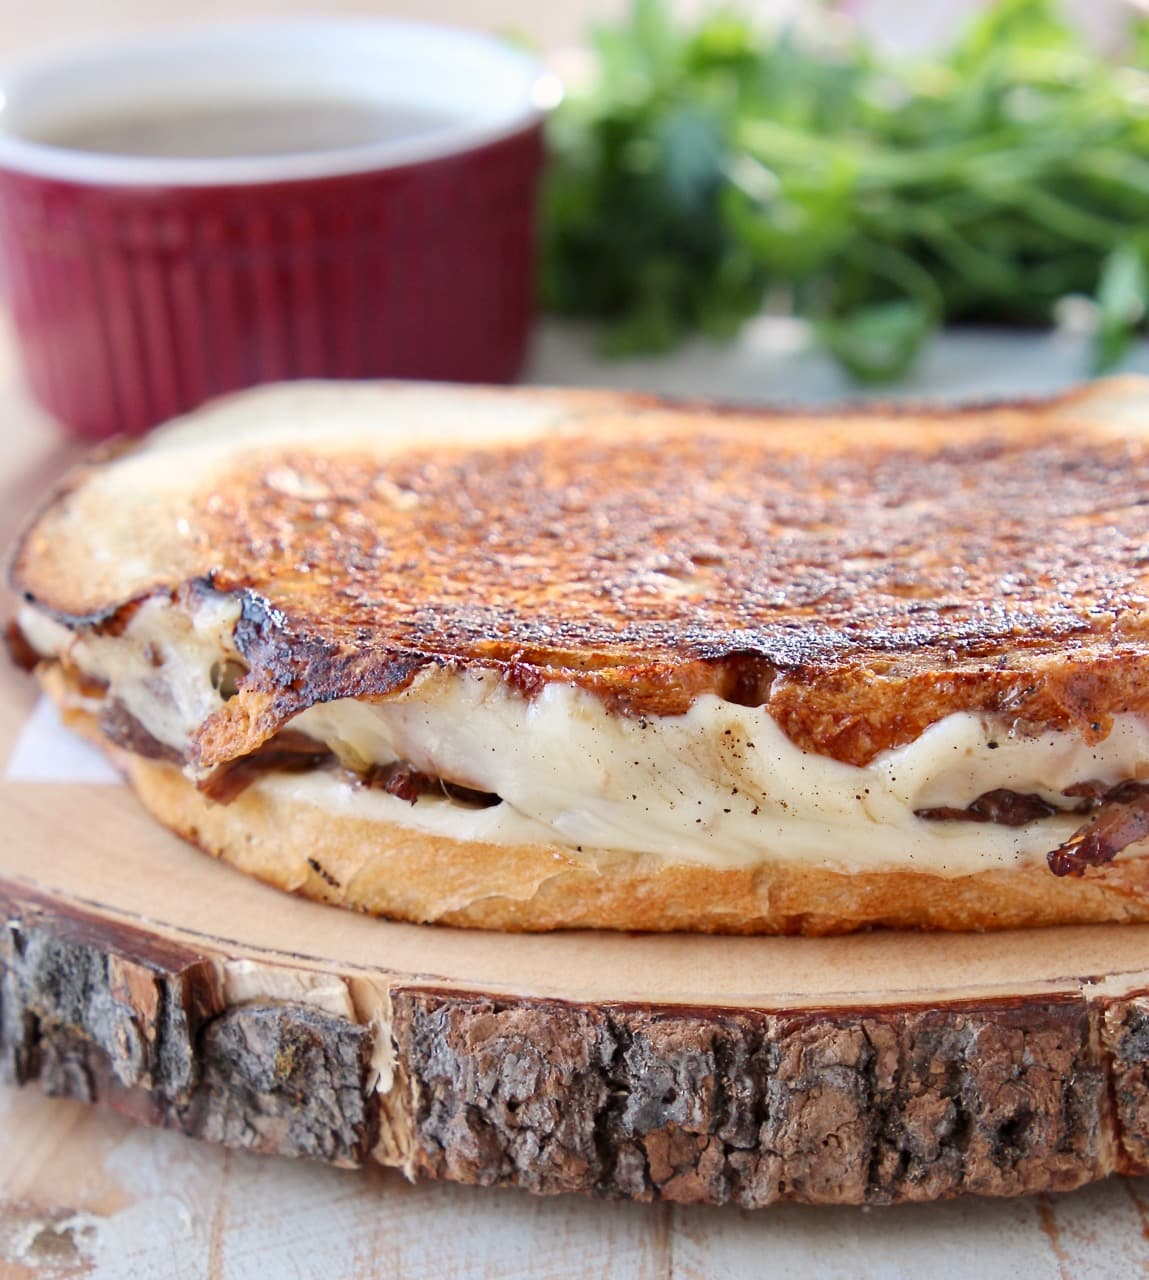 Pot roast grilled cheese sandwich with melted gruyere cheese on wood cutting board with fresh parsley and small red ramekin of au jus